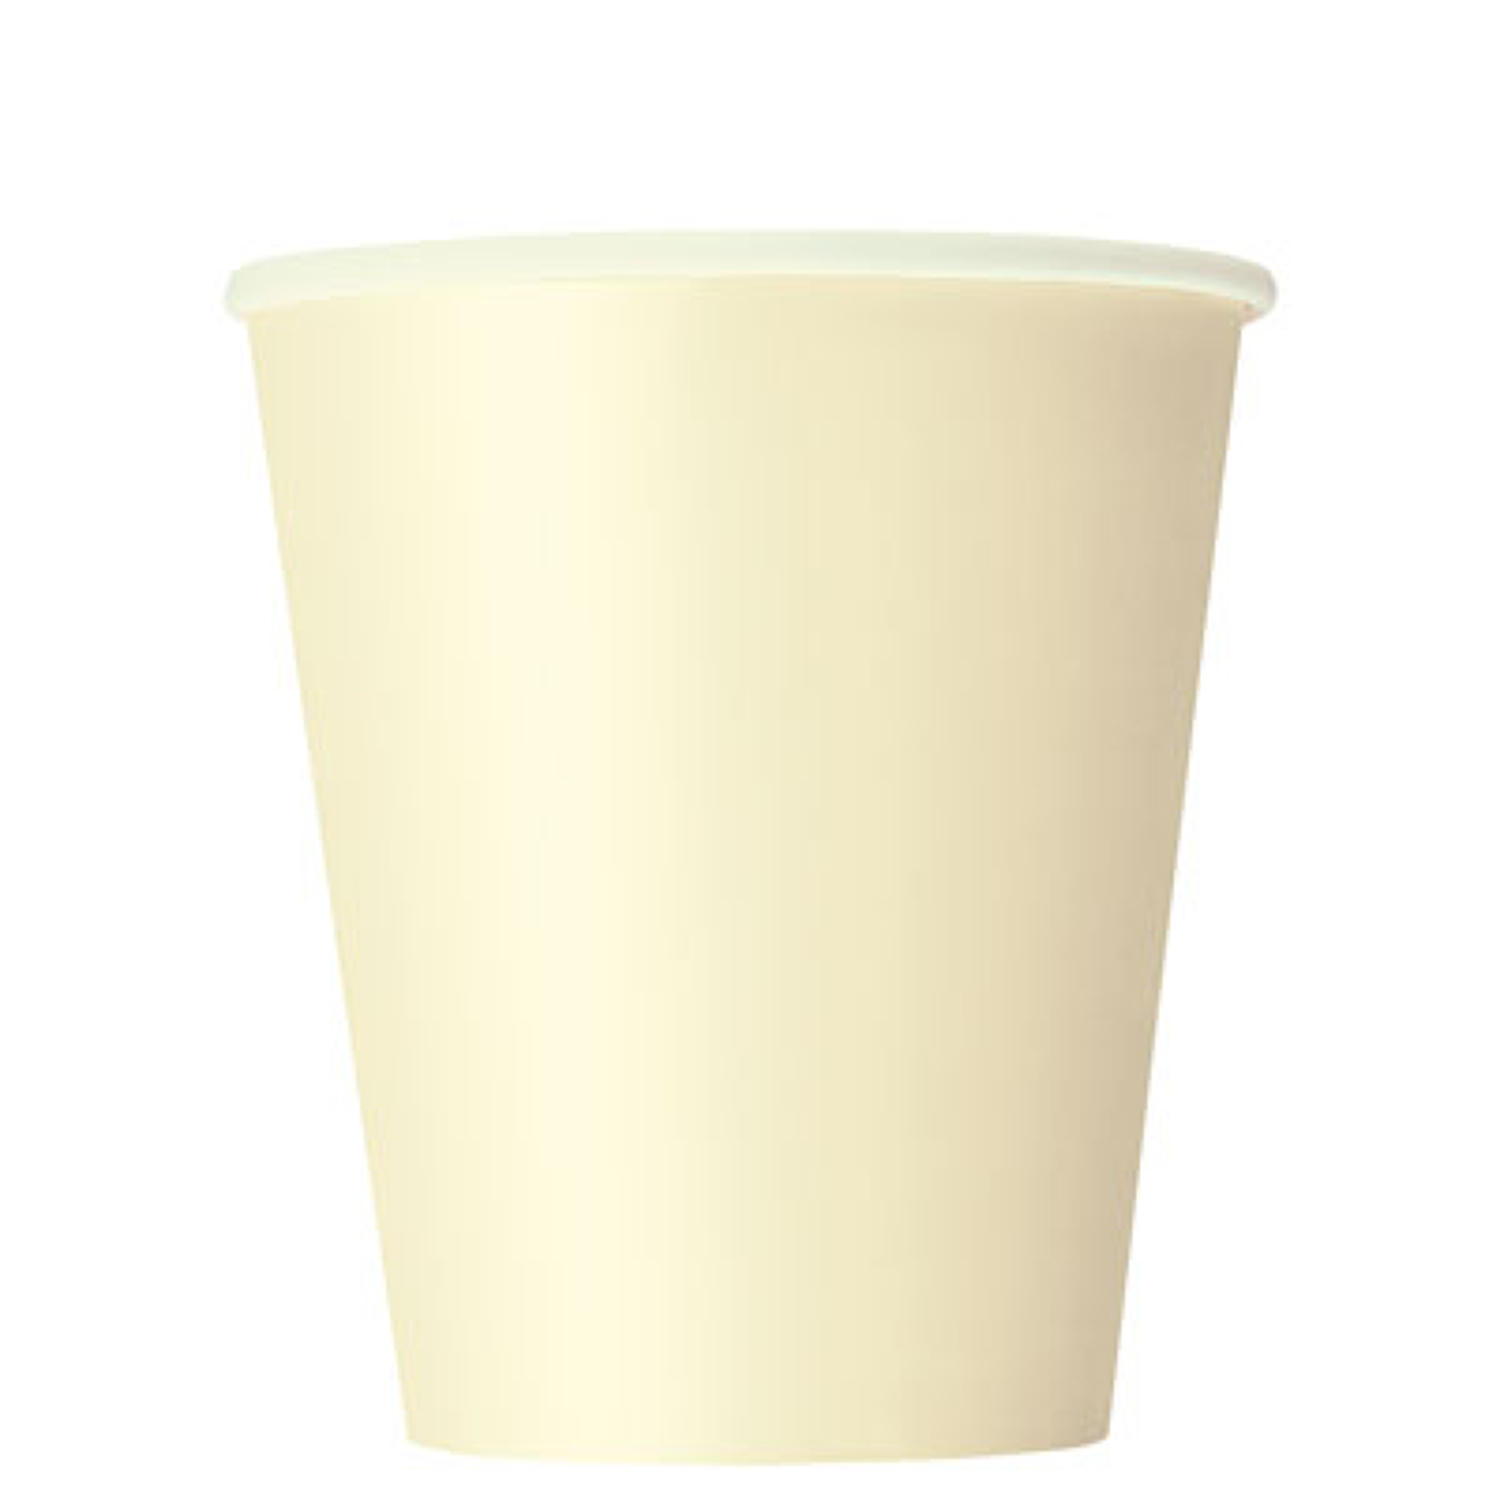 Ivory 9oz paper cups